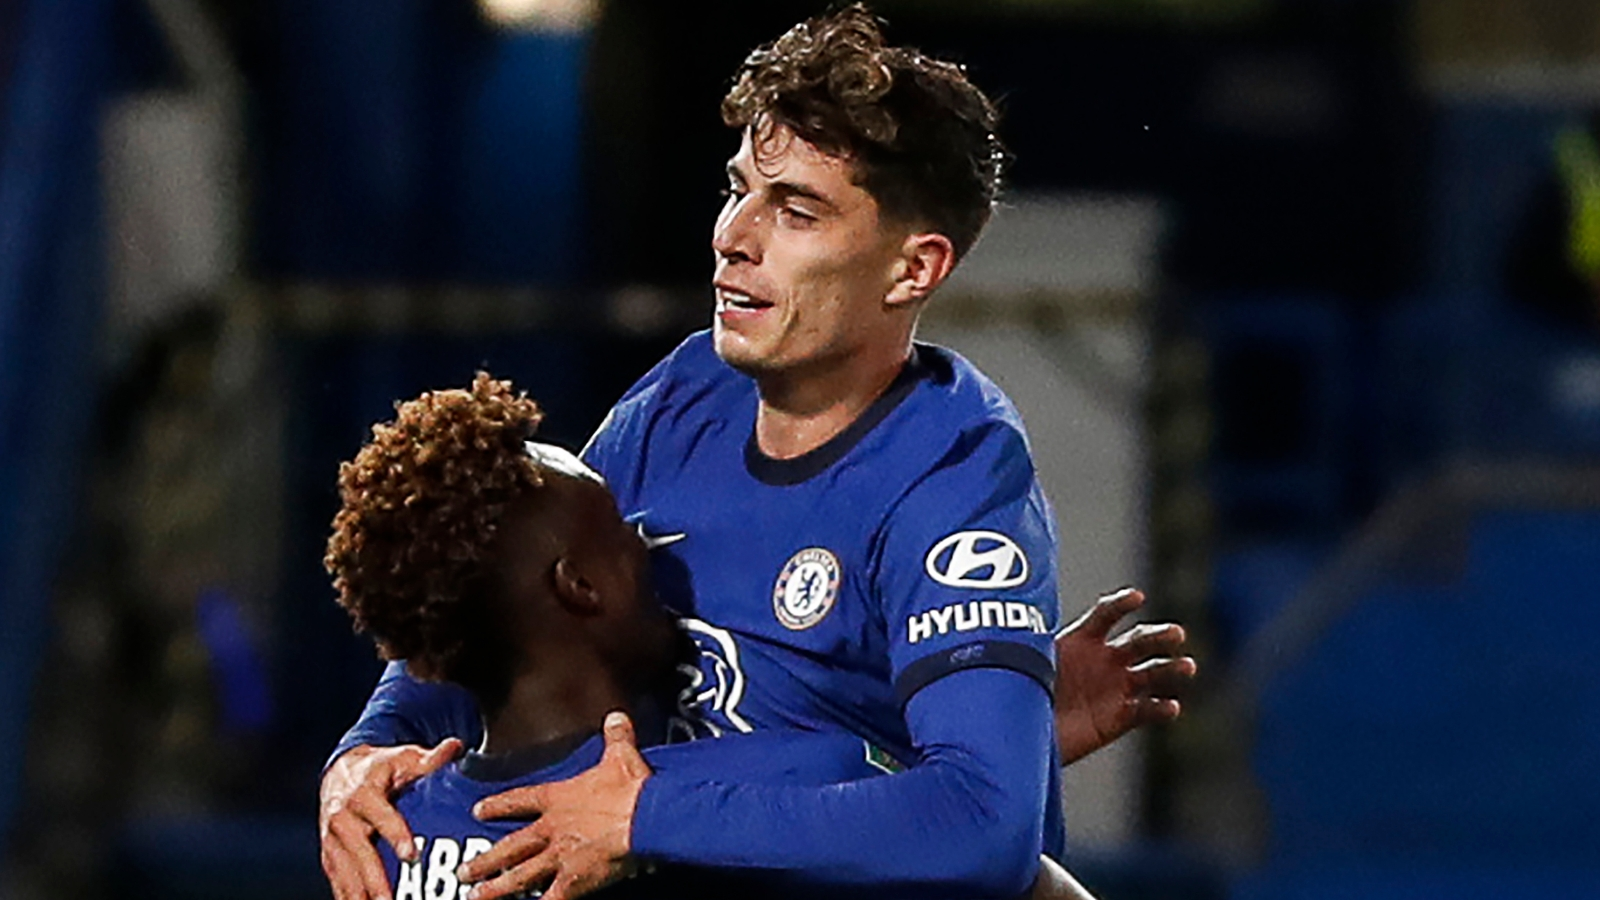 Havertz admits to 'very difficult' start at Chelsea before building  confidence with hat-trick heroics | Goal.com